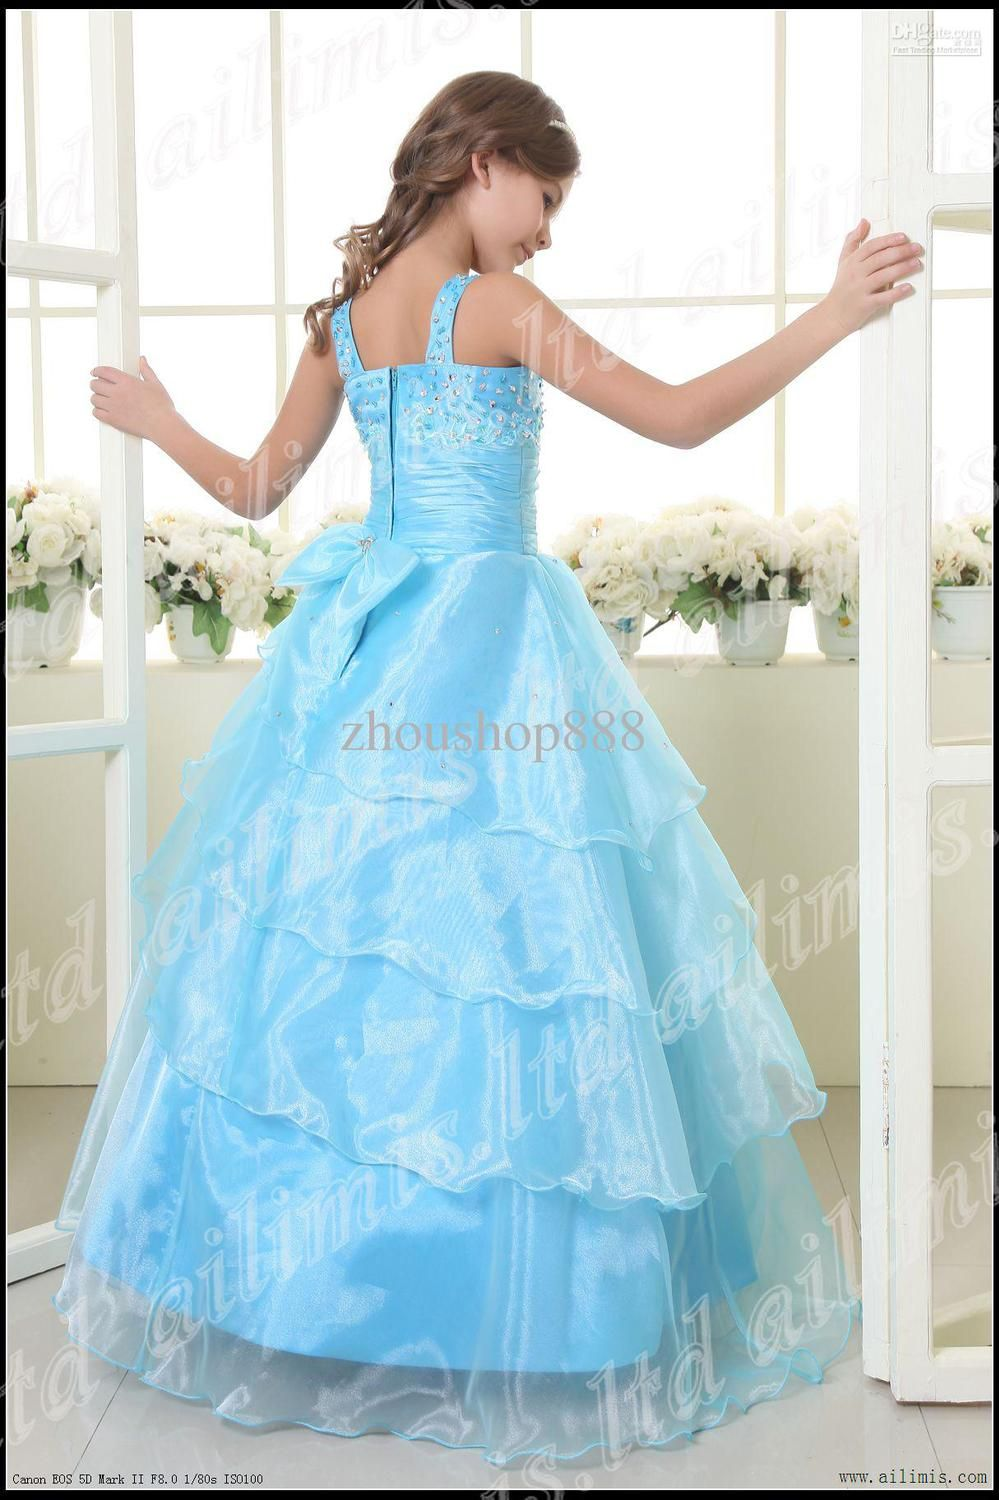 pretty blue princess dress with sleeve | Blue Girl Kids Pageant ...